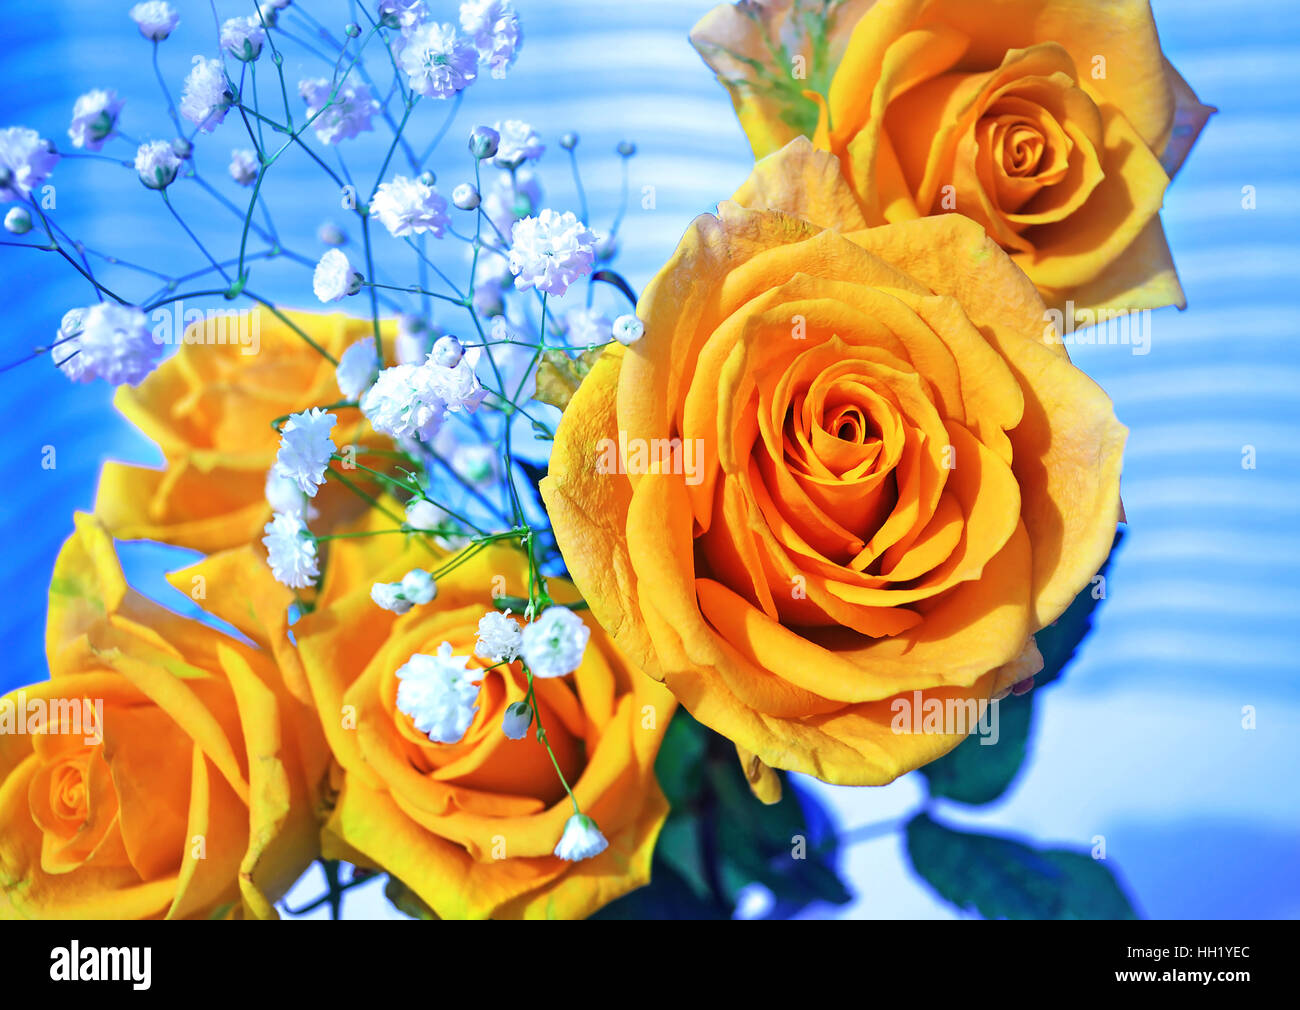 Yellow roses flower bouquet with blue background stock photo yellow roses flower bouquet with blue background izmirmasajfo